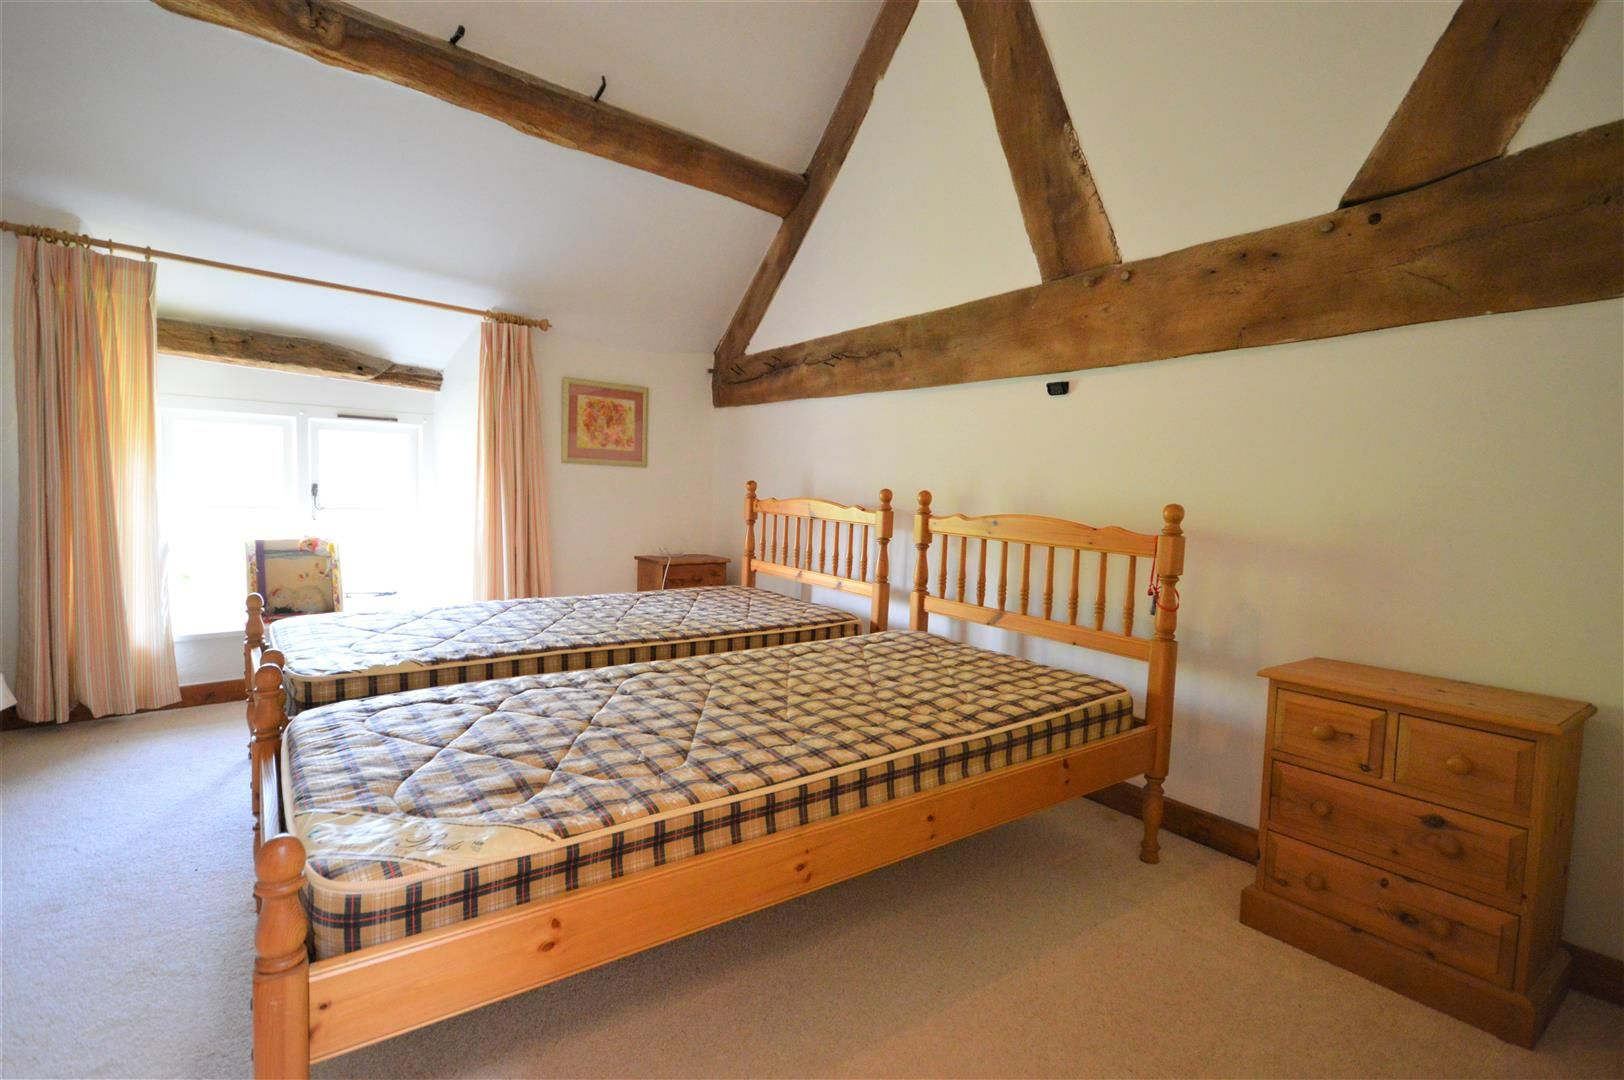 3 bed barn-conversion for sale in Stoke Prior 14